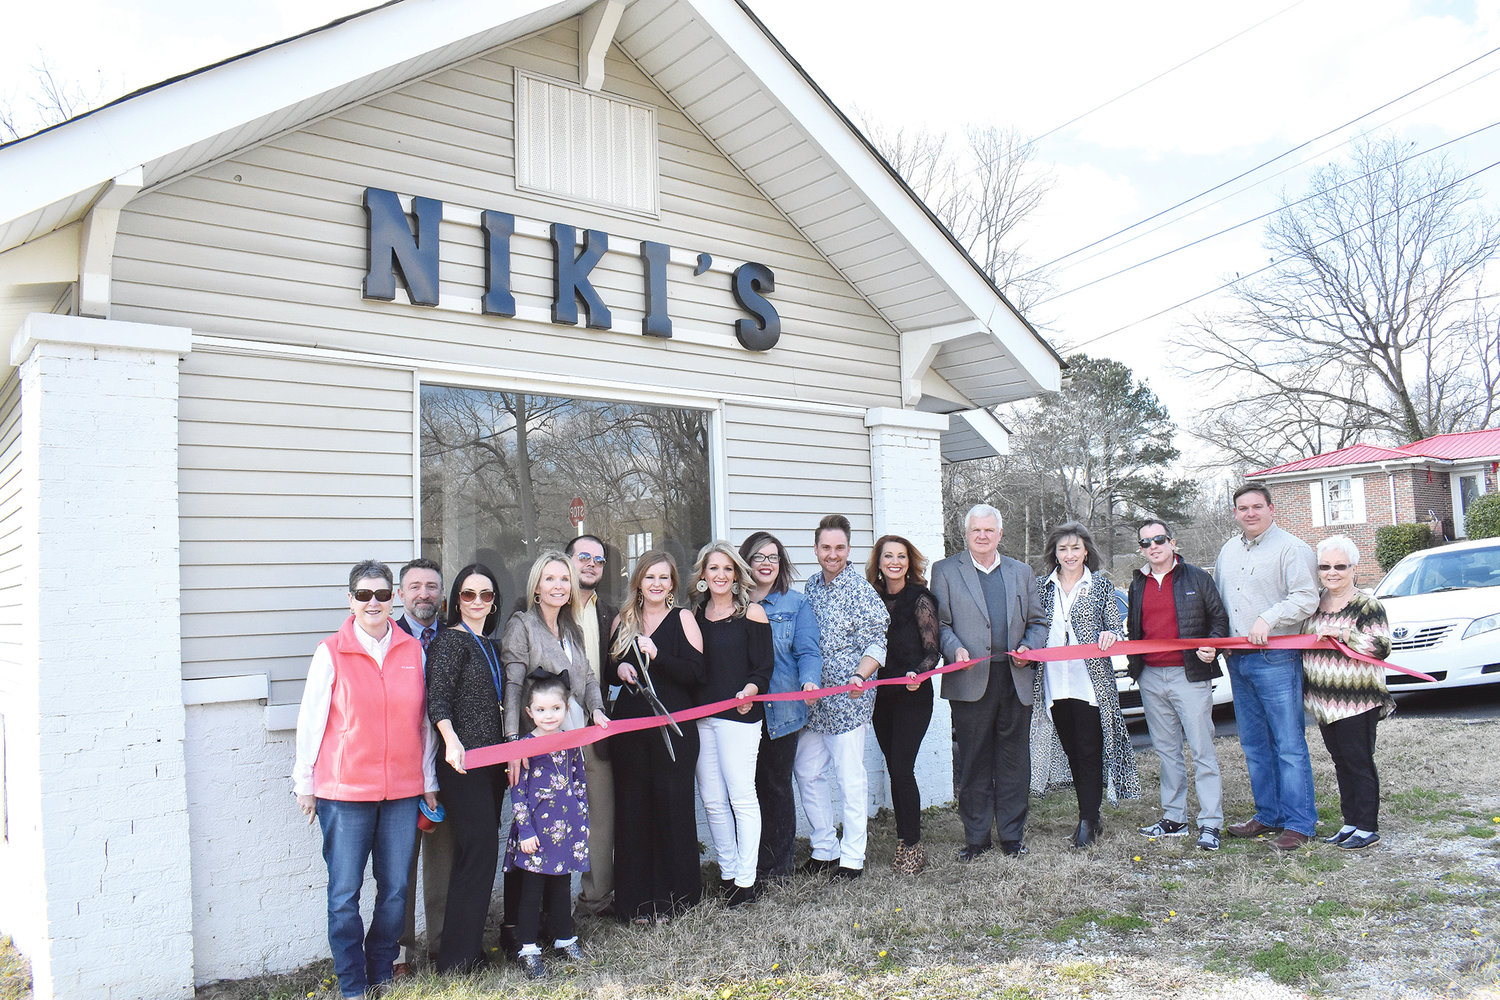 A ribbon-cutting was held for the new location of Niki's Solon Monday at 1500 9th Ave. in Jasper, next to the Jasper Feed and Seed.  Owner Niki Sherer, a Curry native who lives now in Jasper, said the business opened there about six weeks ago, after moving from from its Highway 78 West location after eight years. The business employs five people.  The salon is open Tuesday through Friday 9 a.m. to 5 p.m., and Saturdays from 8 a.m. to noon; appointments for later are welcome.  Anyone may contact the business by its Facebook or Instagram pages, or by calling 205-265-2574; employees can also be reached on their social media pages.